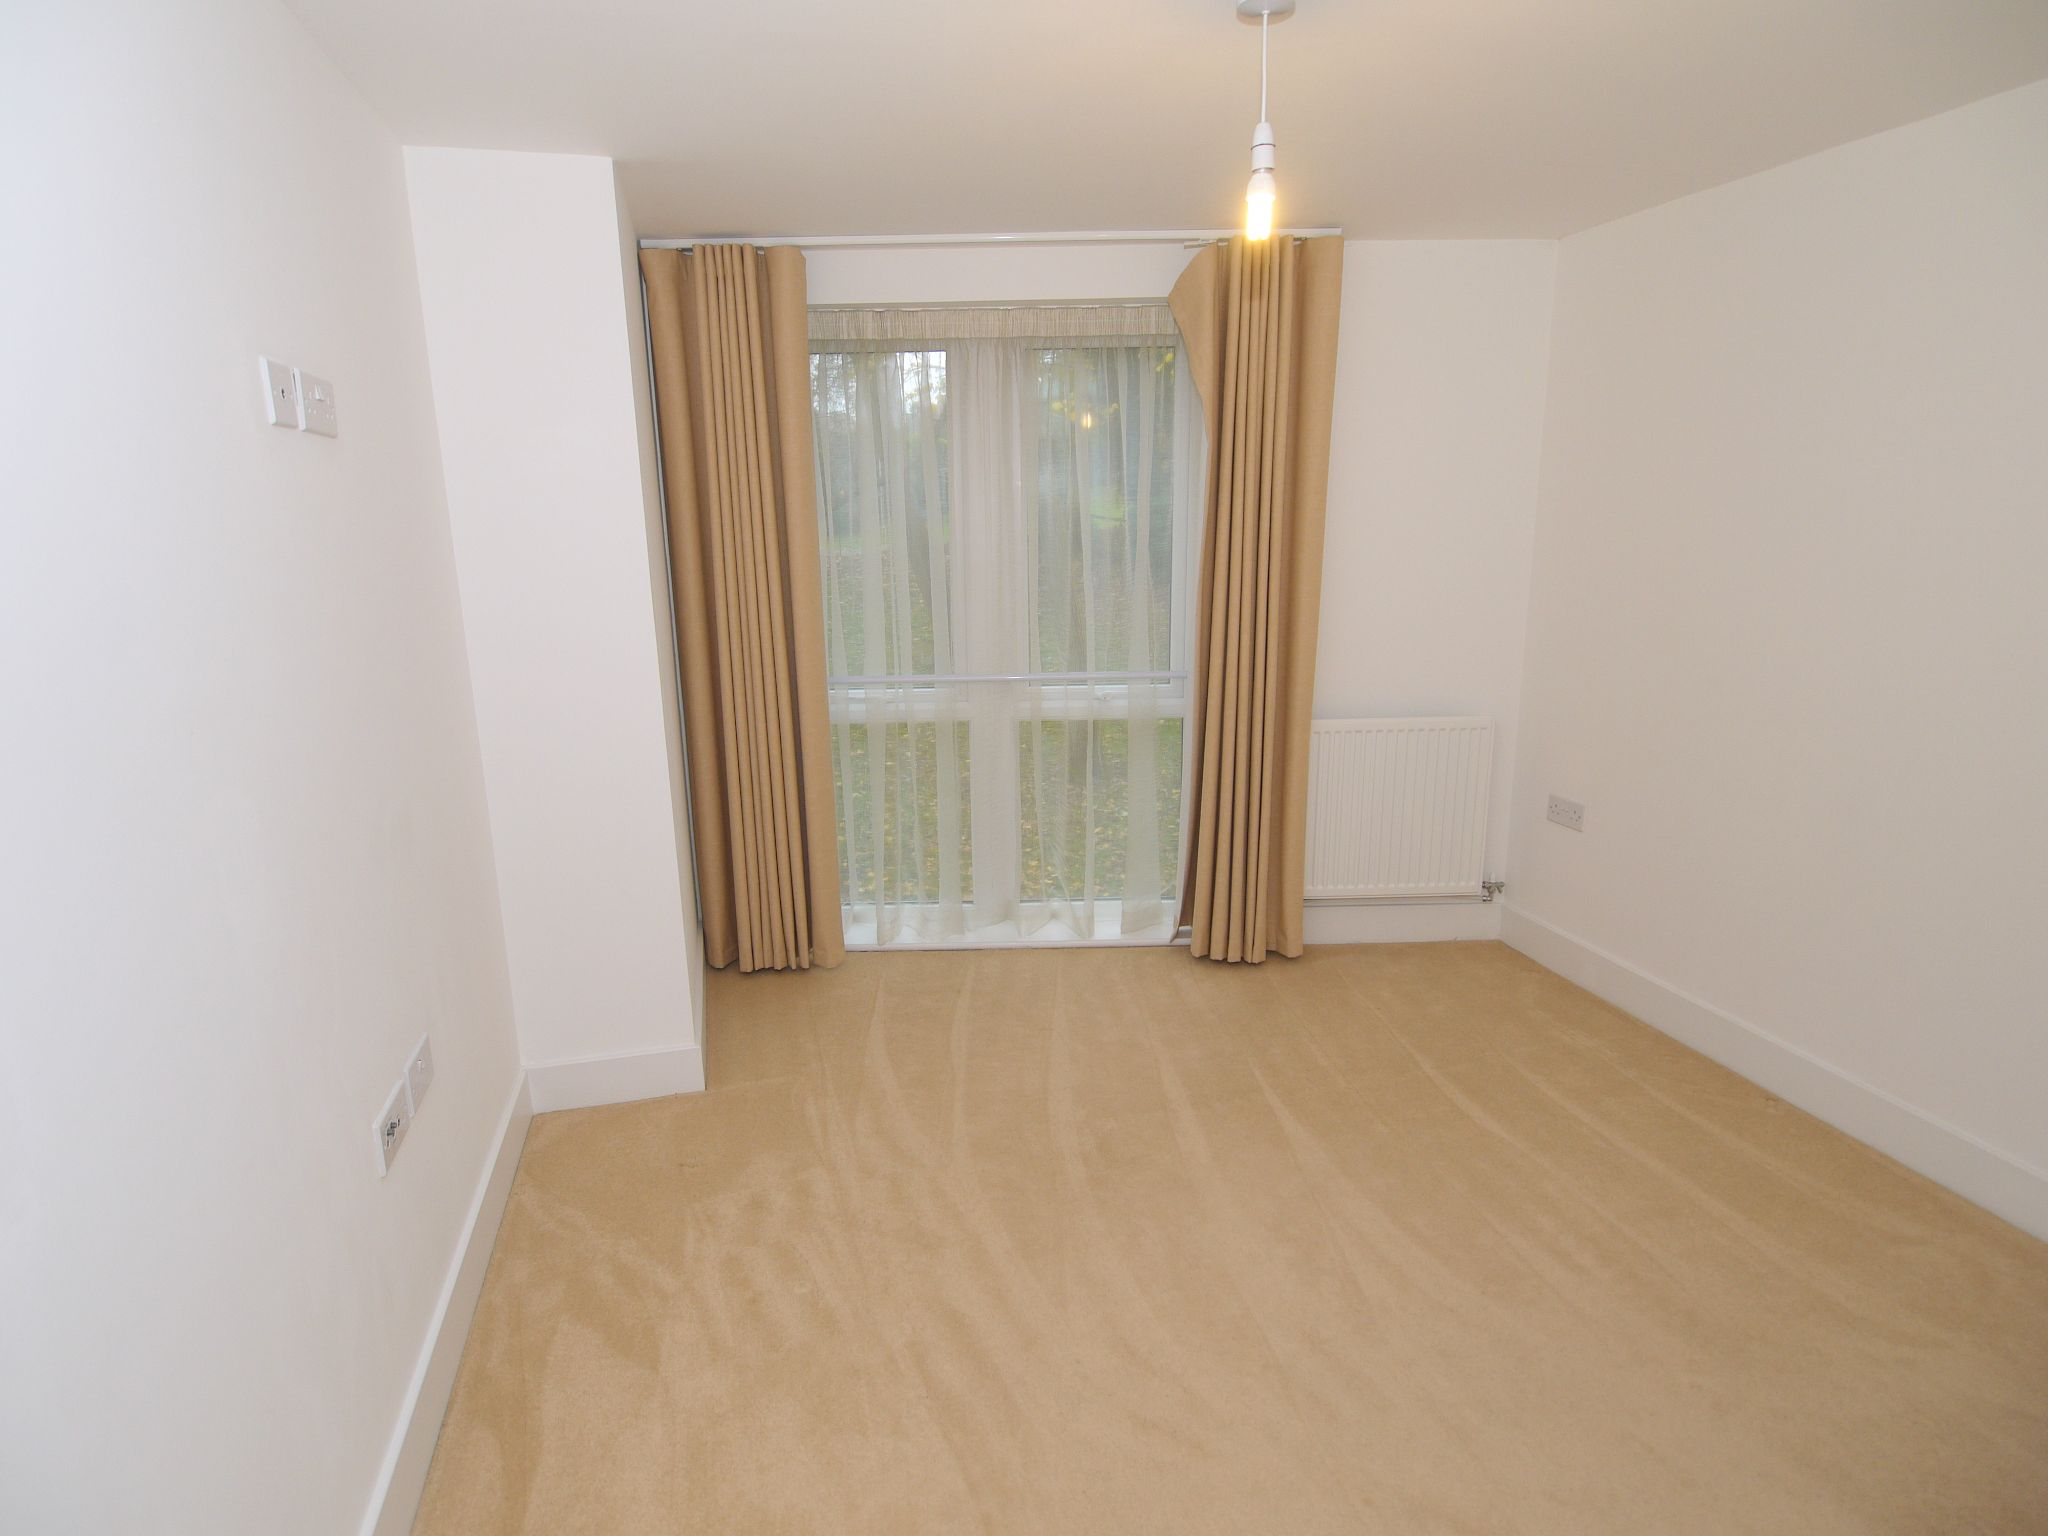 2 bedroom apartment For Sale in Sevenoaks - Photograph 7